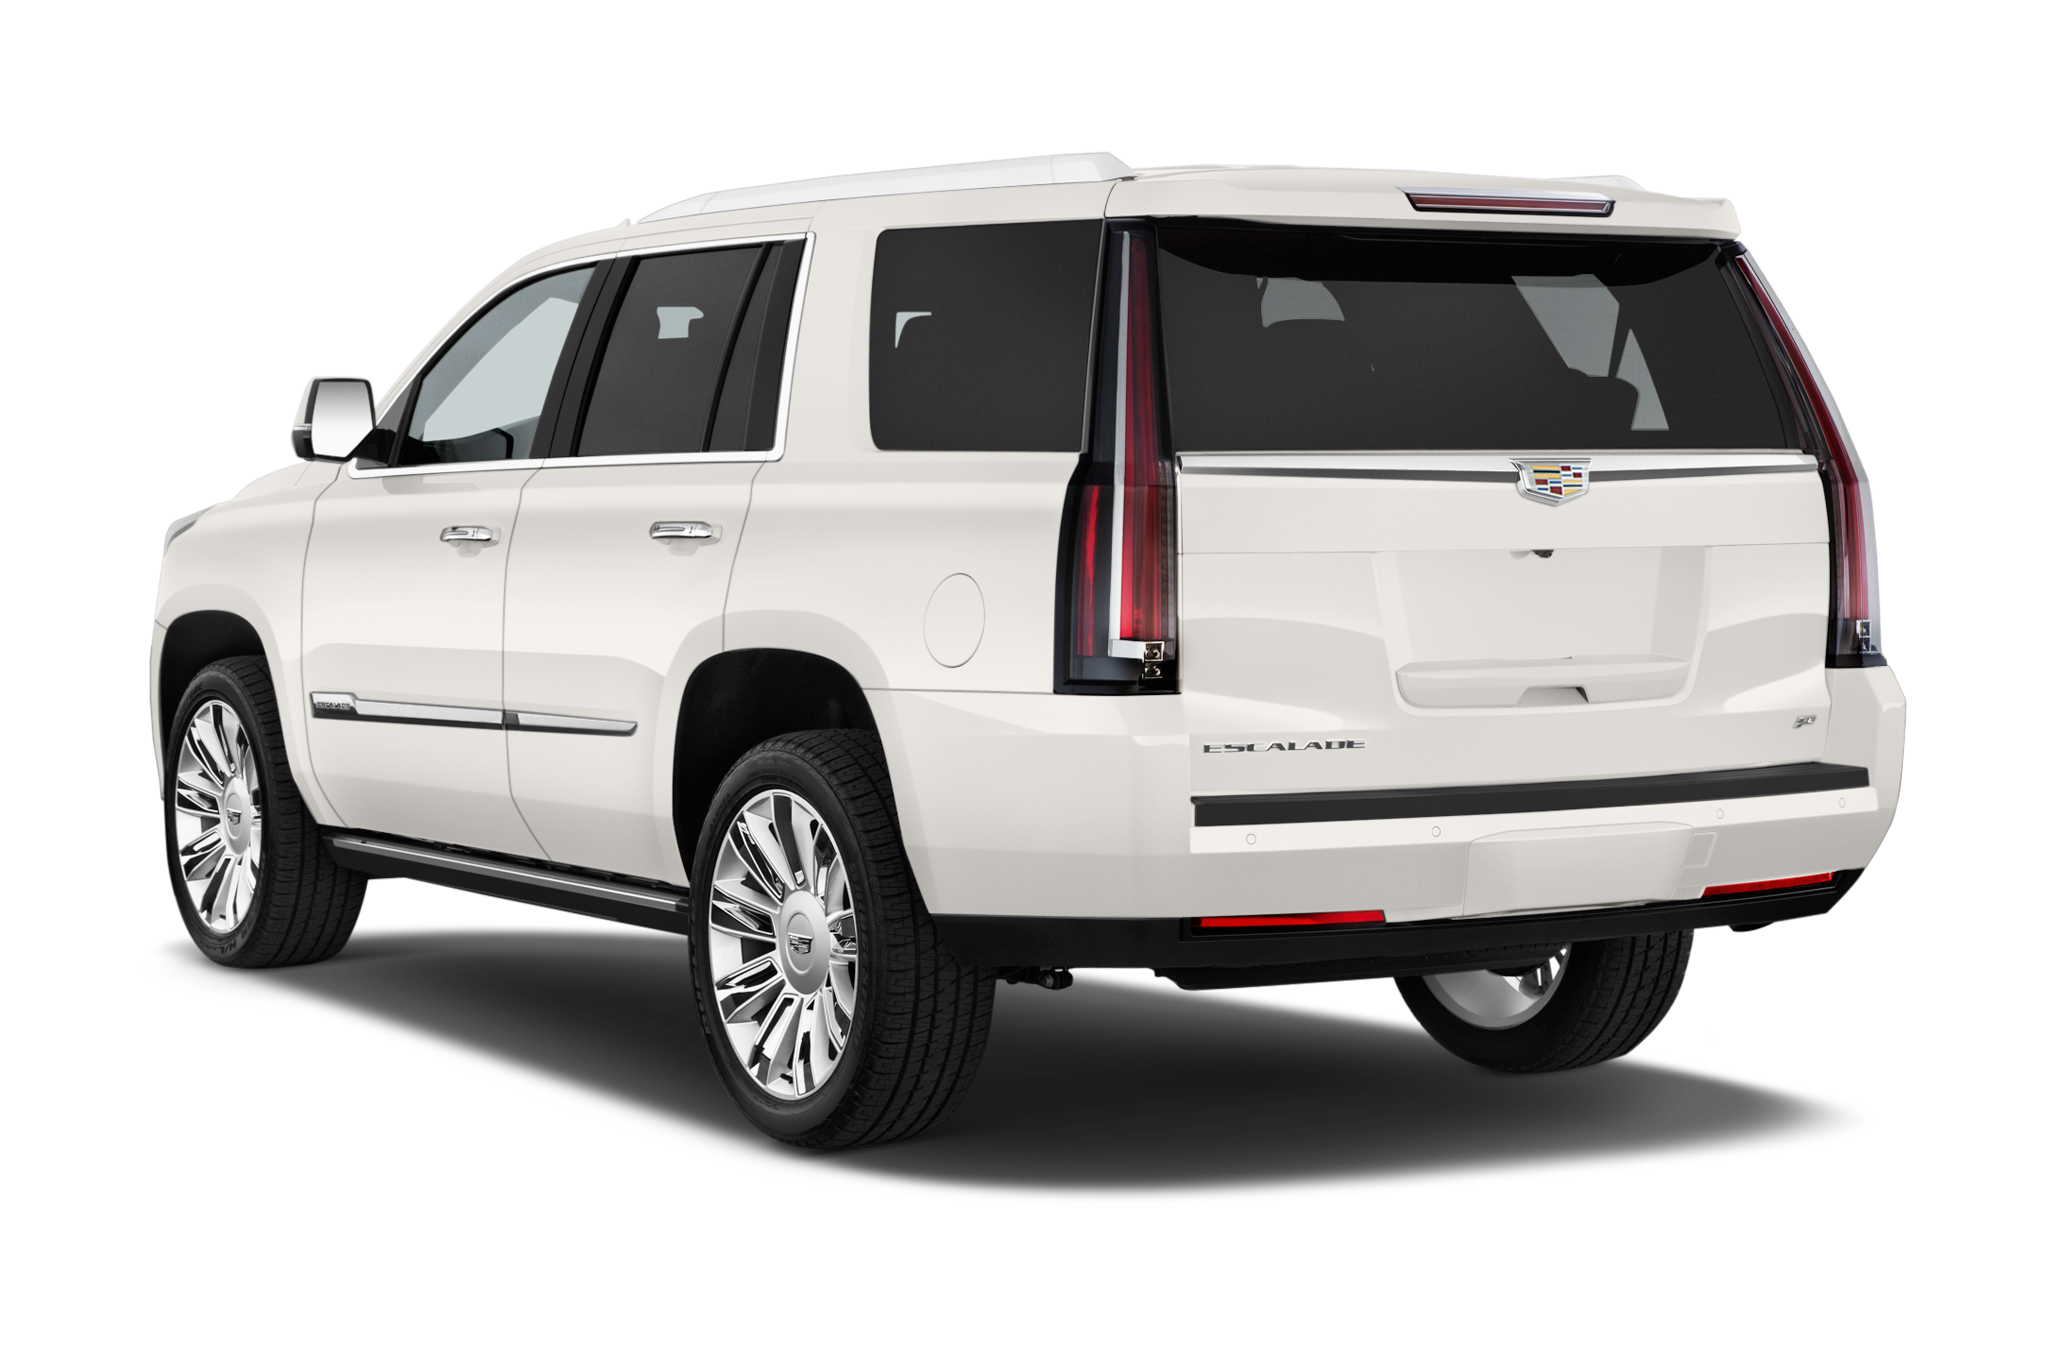 2020 Cadillac Escalade Will Reportedly Be Offered With ...  |2020 Cadillac Escalade Platinum